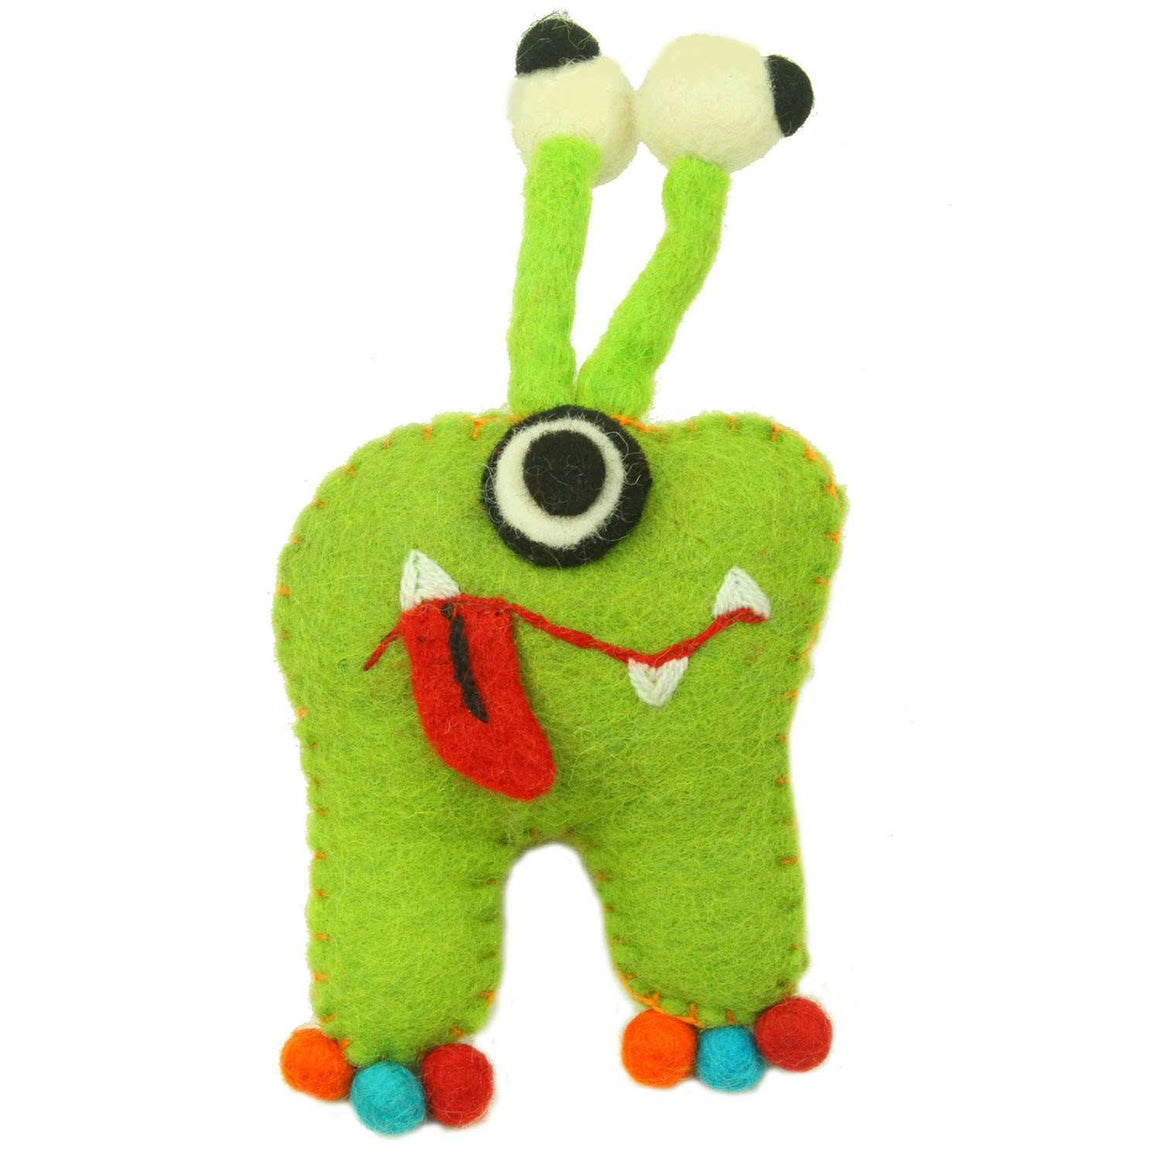 Hand Felted Green Tooth Monster with Bug Eyes - Global Groove CoolHatcher at TheArtOfLiving.Earth